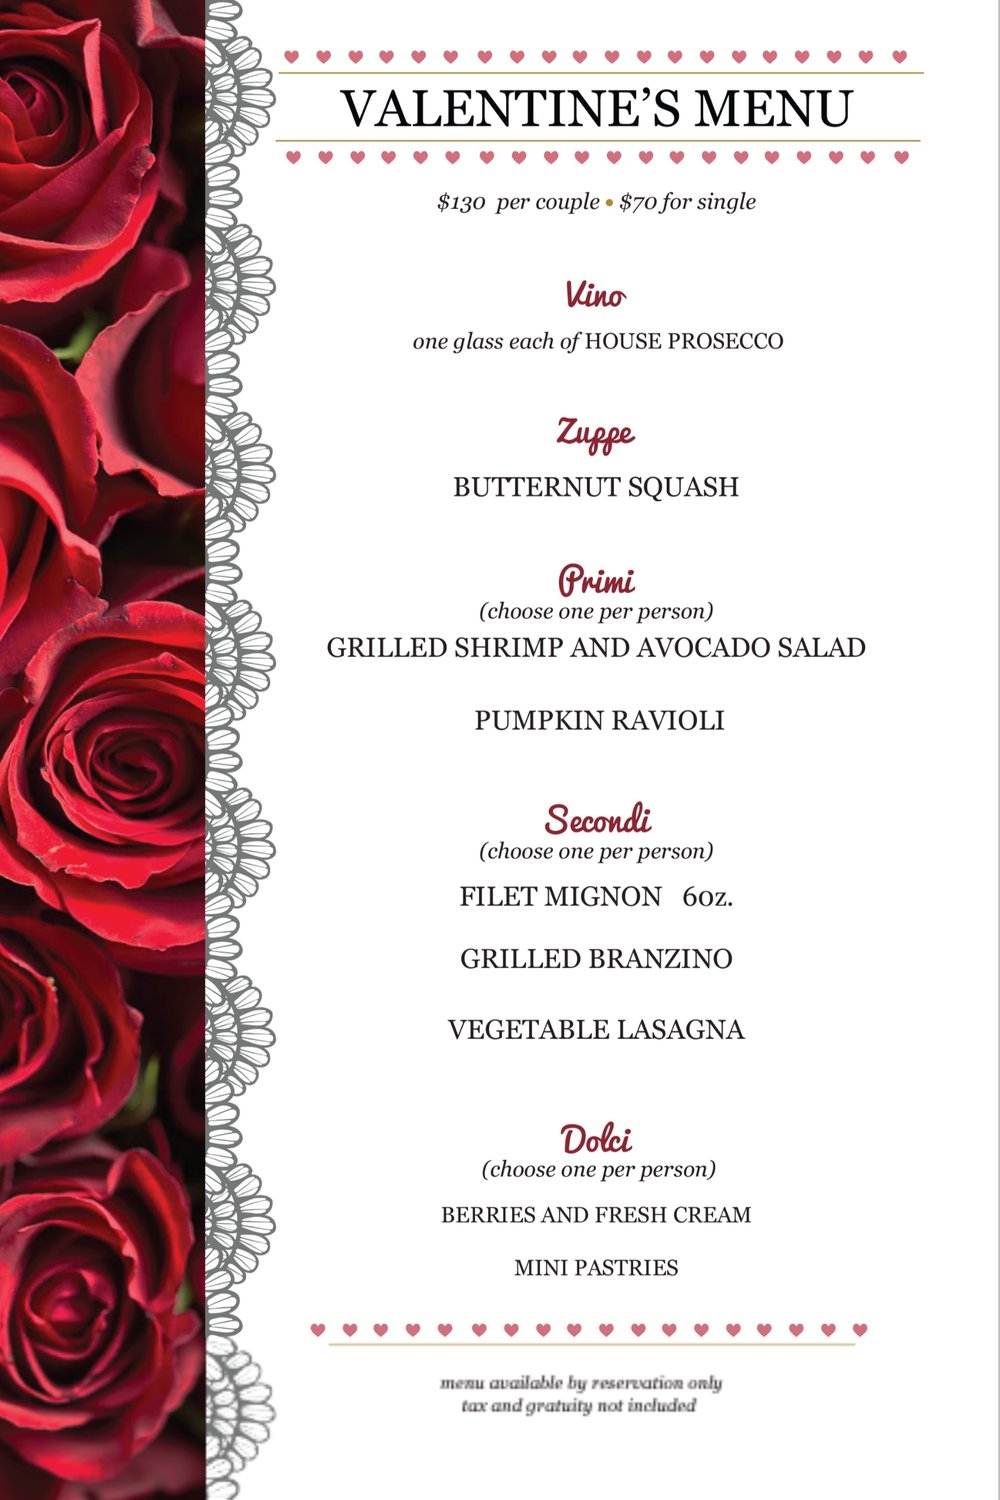 Treat your loved one (or yourself) to a romantic dinner with us. - Deposit required for reservations. Call 212-721-0068 or reserve a seat on OpenTable.